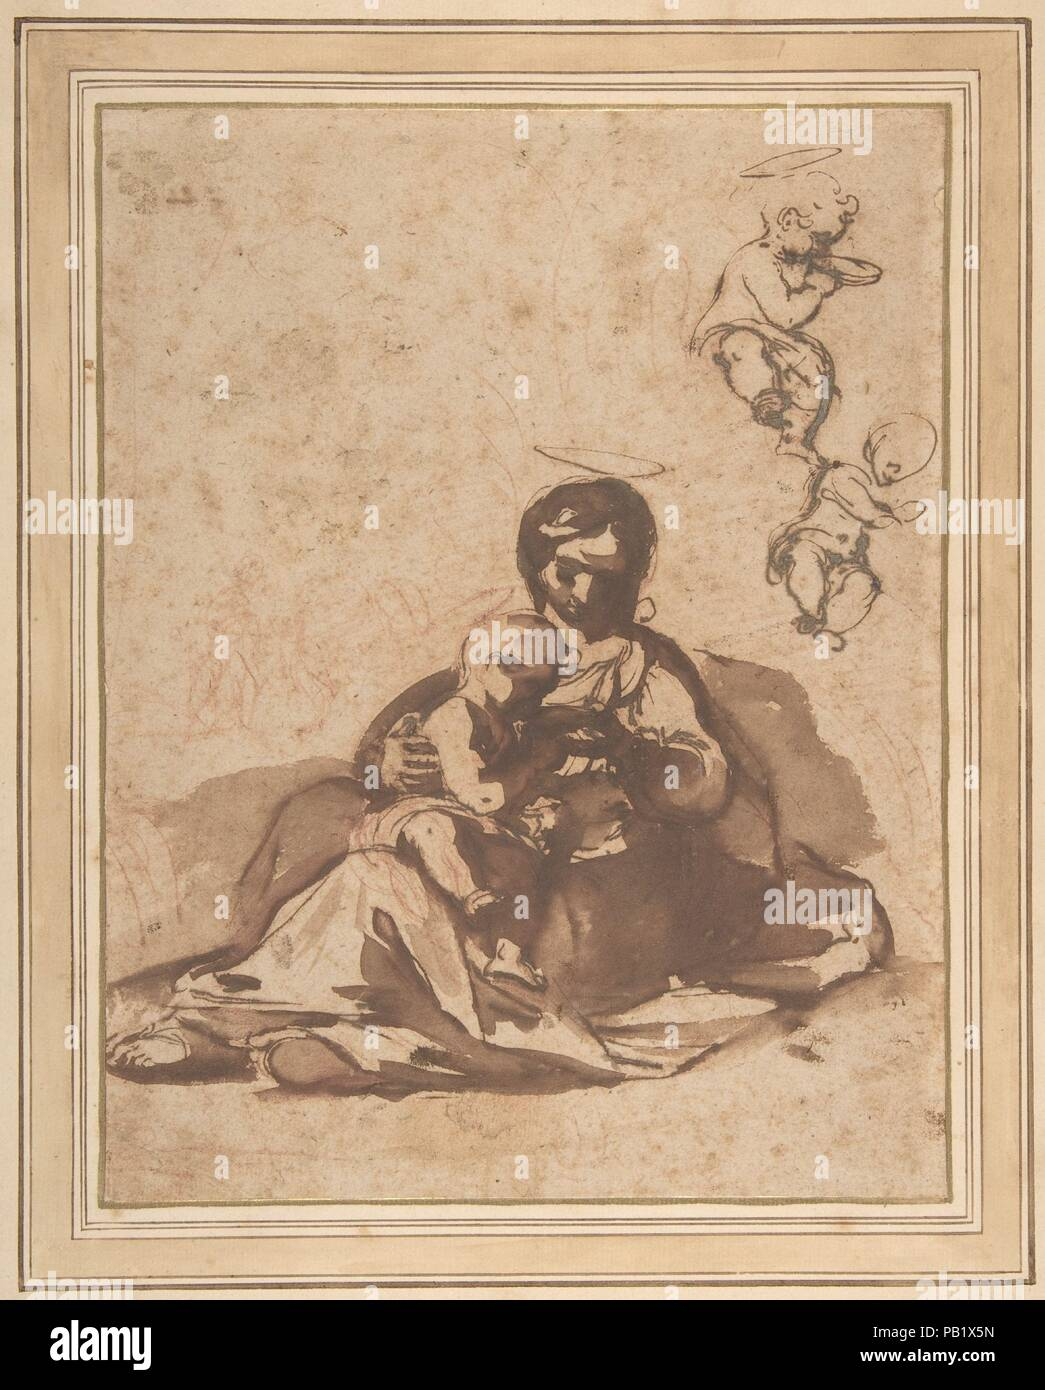 Studies for a Rest on the Flight into Egypt. Artist: Rutilio Manetti (Italian, Siena 1570-1639 Siena). Dimensions: 9 7/16 x 7 1/4in. (23.9 x 18.4cm). Date: 1571-1639.  In this robust drawing for his painting now in the Gamäldegalerie of Kassel, Germany, Manetti portrayed the Madonna as a humble down-to-earth mother, giving her infant son something to drink. Although he came under the spell of Caravaggio's dramatic realism, Manetti was at first the pupil of Francesco Vanni (1563-1610), whose fantastically delicate, airborne Virgin Mary is seen at right. Listed by Claus Virch in his catalogue of - Stock Image